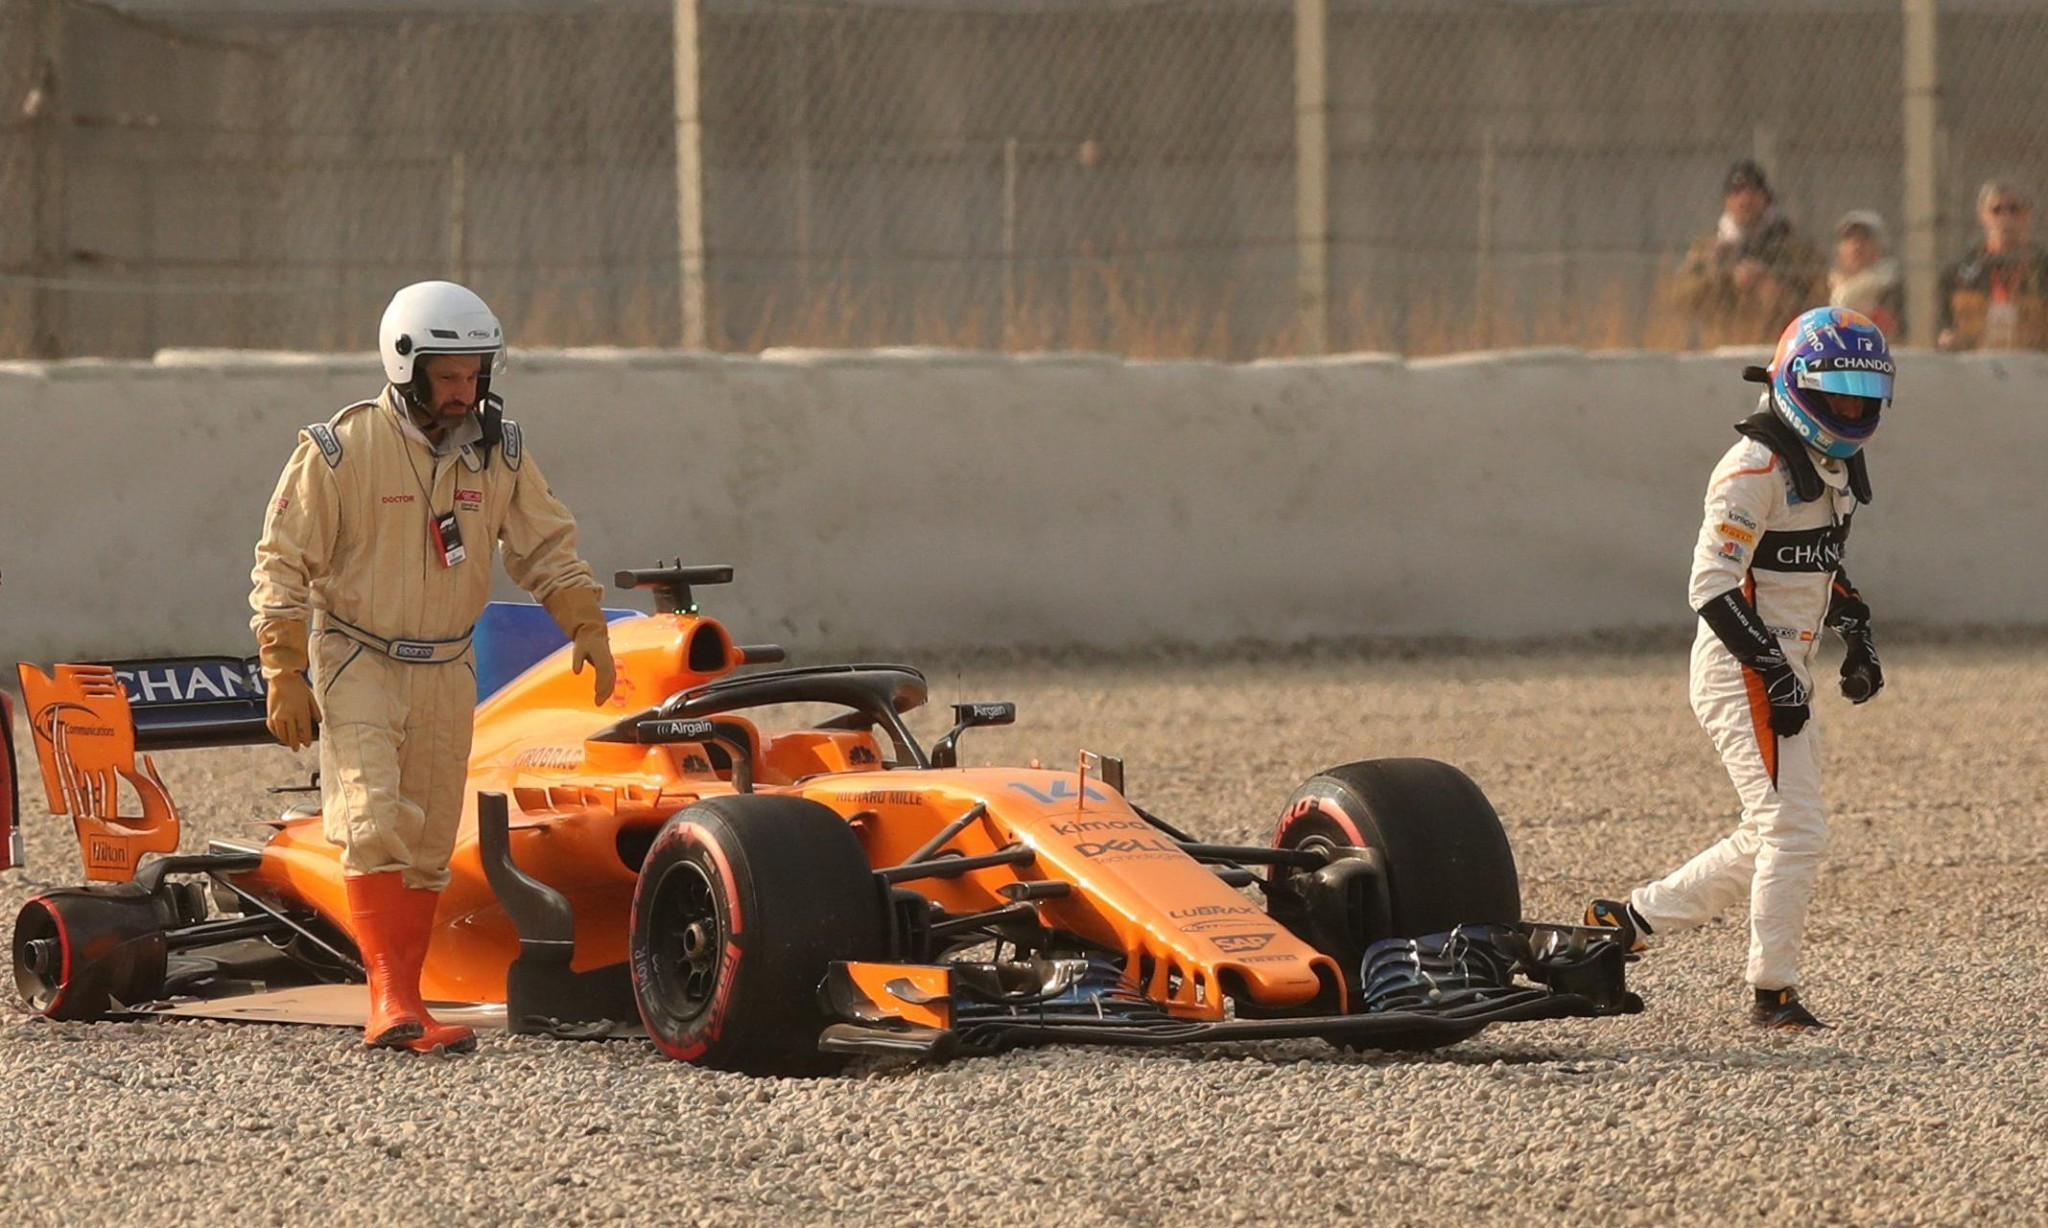 Fernando Alonso spins off as McLaren suffer on day one of F1 testing